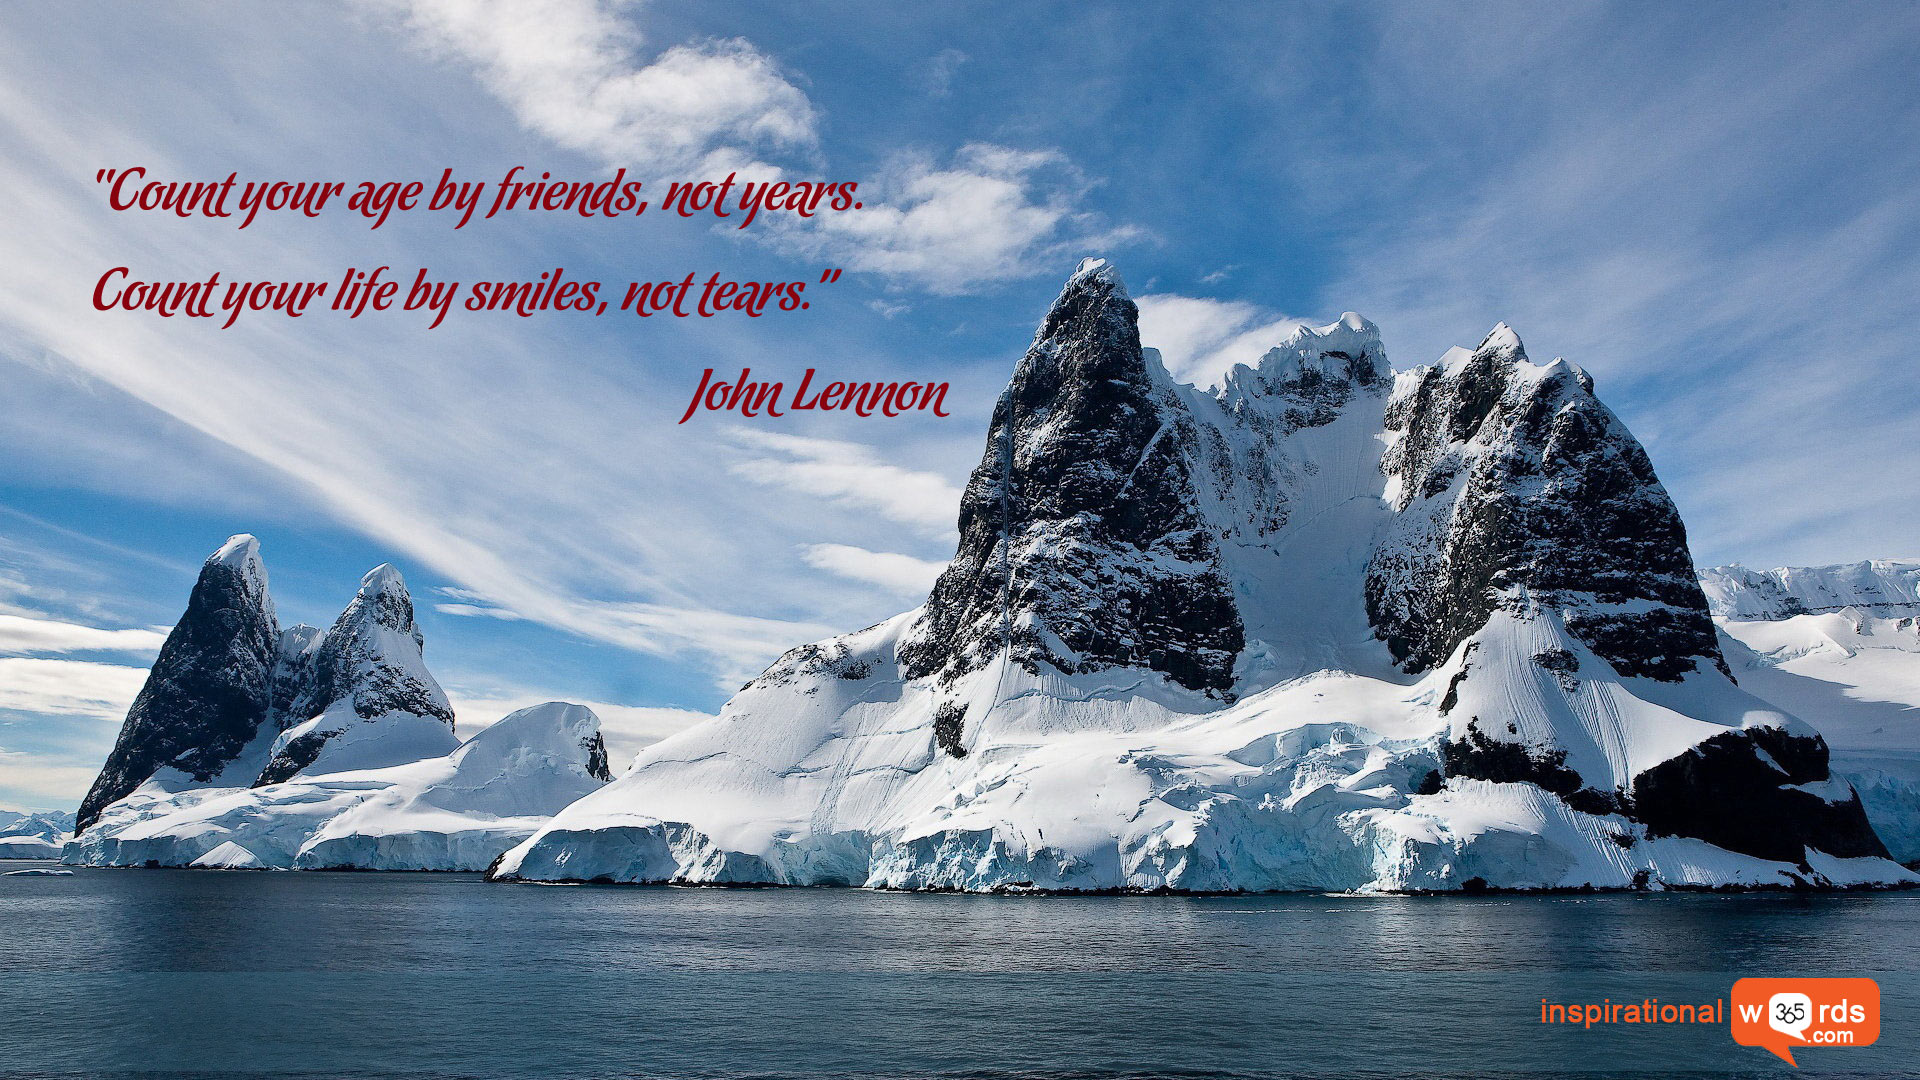 Inspirational Wallpaper Quote by John Lennon